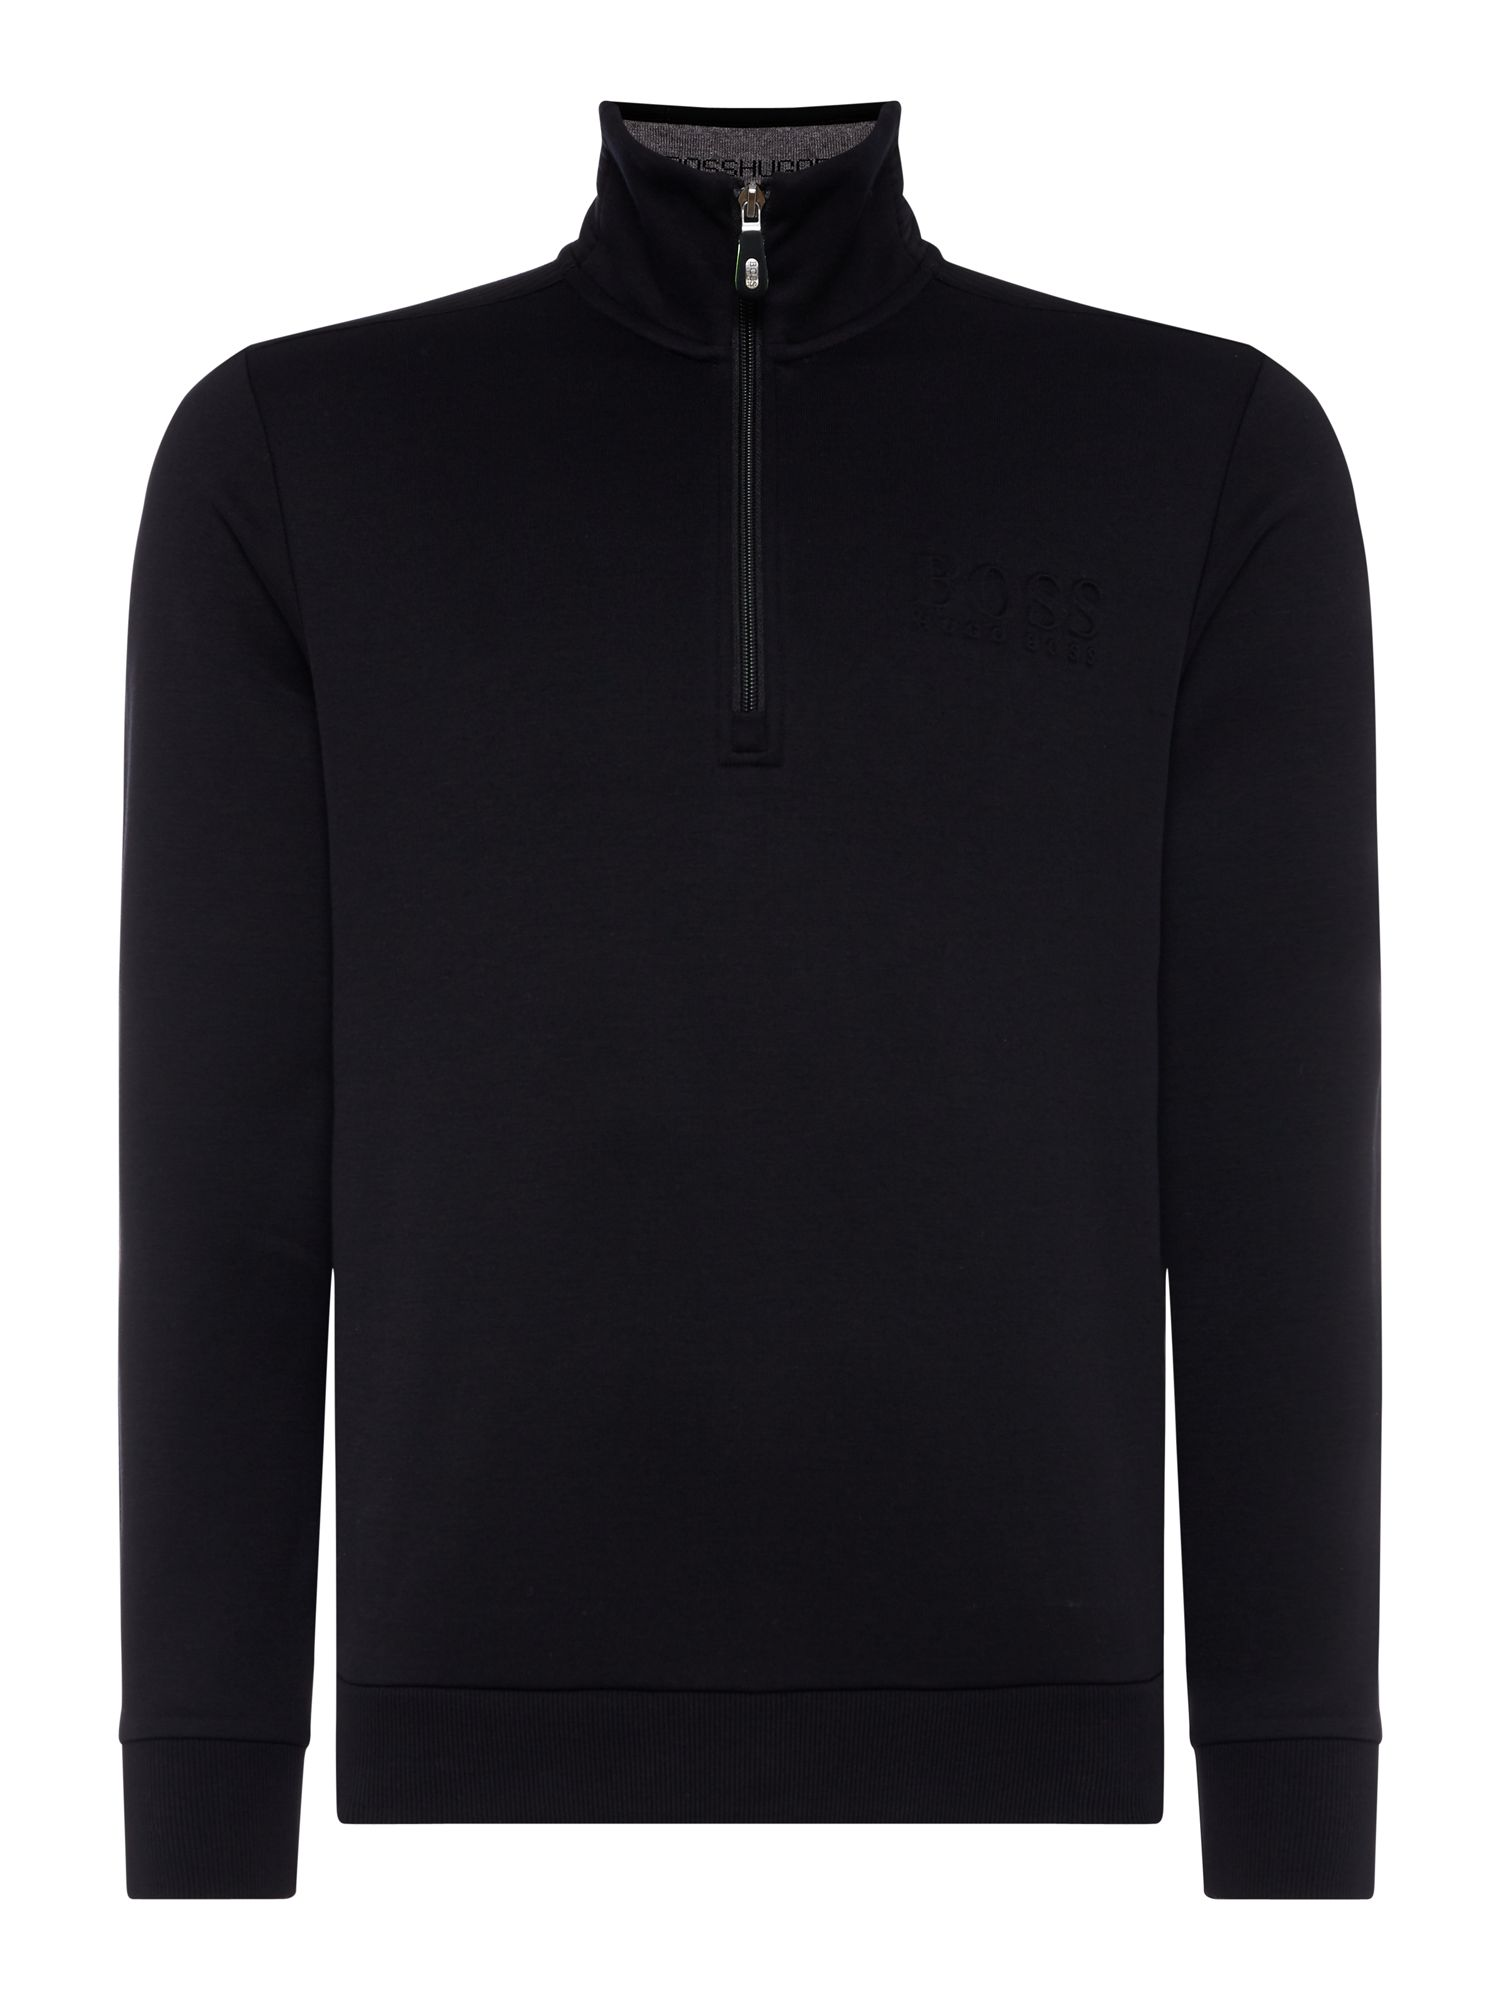 Men's Hugo Boss Quater zip funnel neck sweatshirt, Black